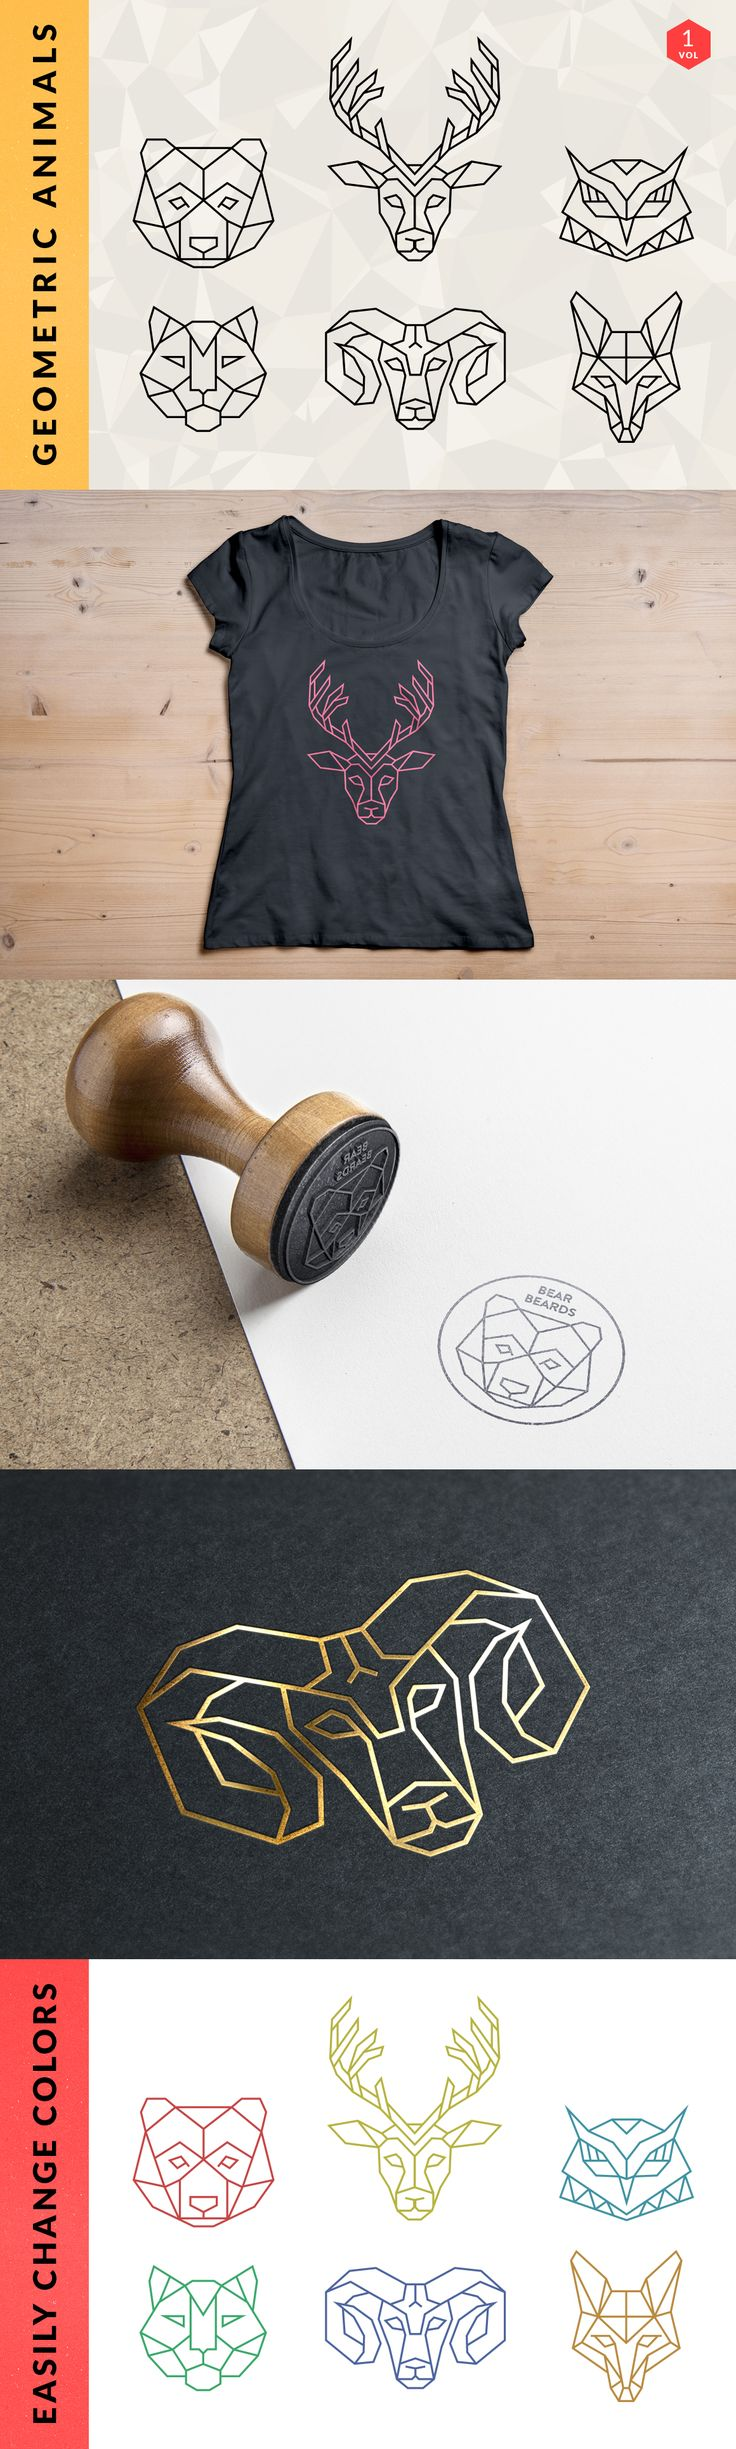 Geometric Animal Logos by Adrian Pelletier.